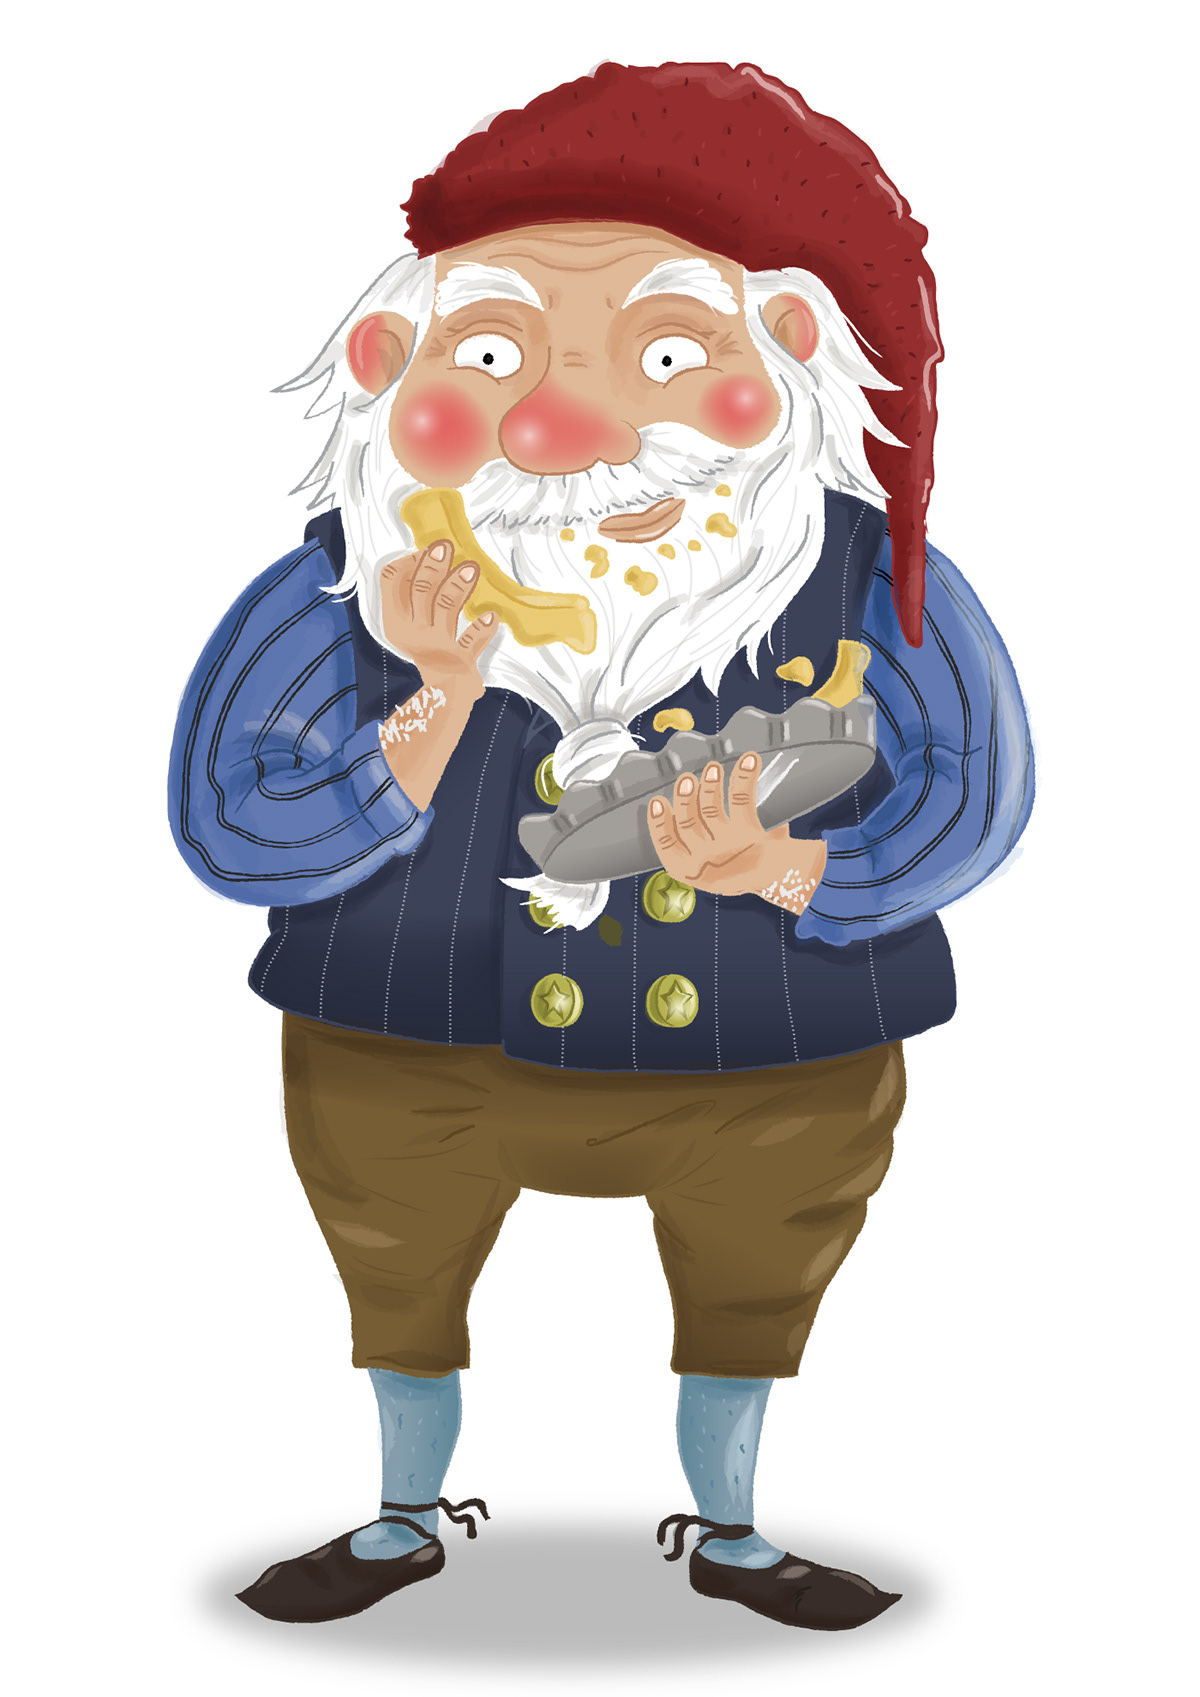 Yule Lads iceland Folklore gnome stubby pie myth winter Christmas shoes